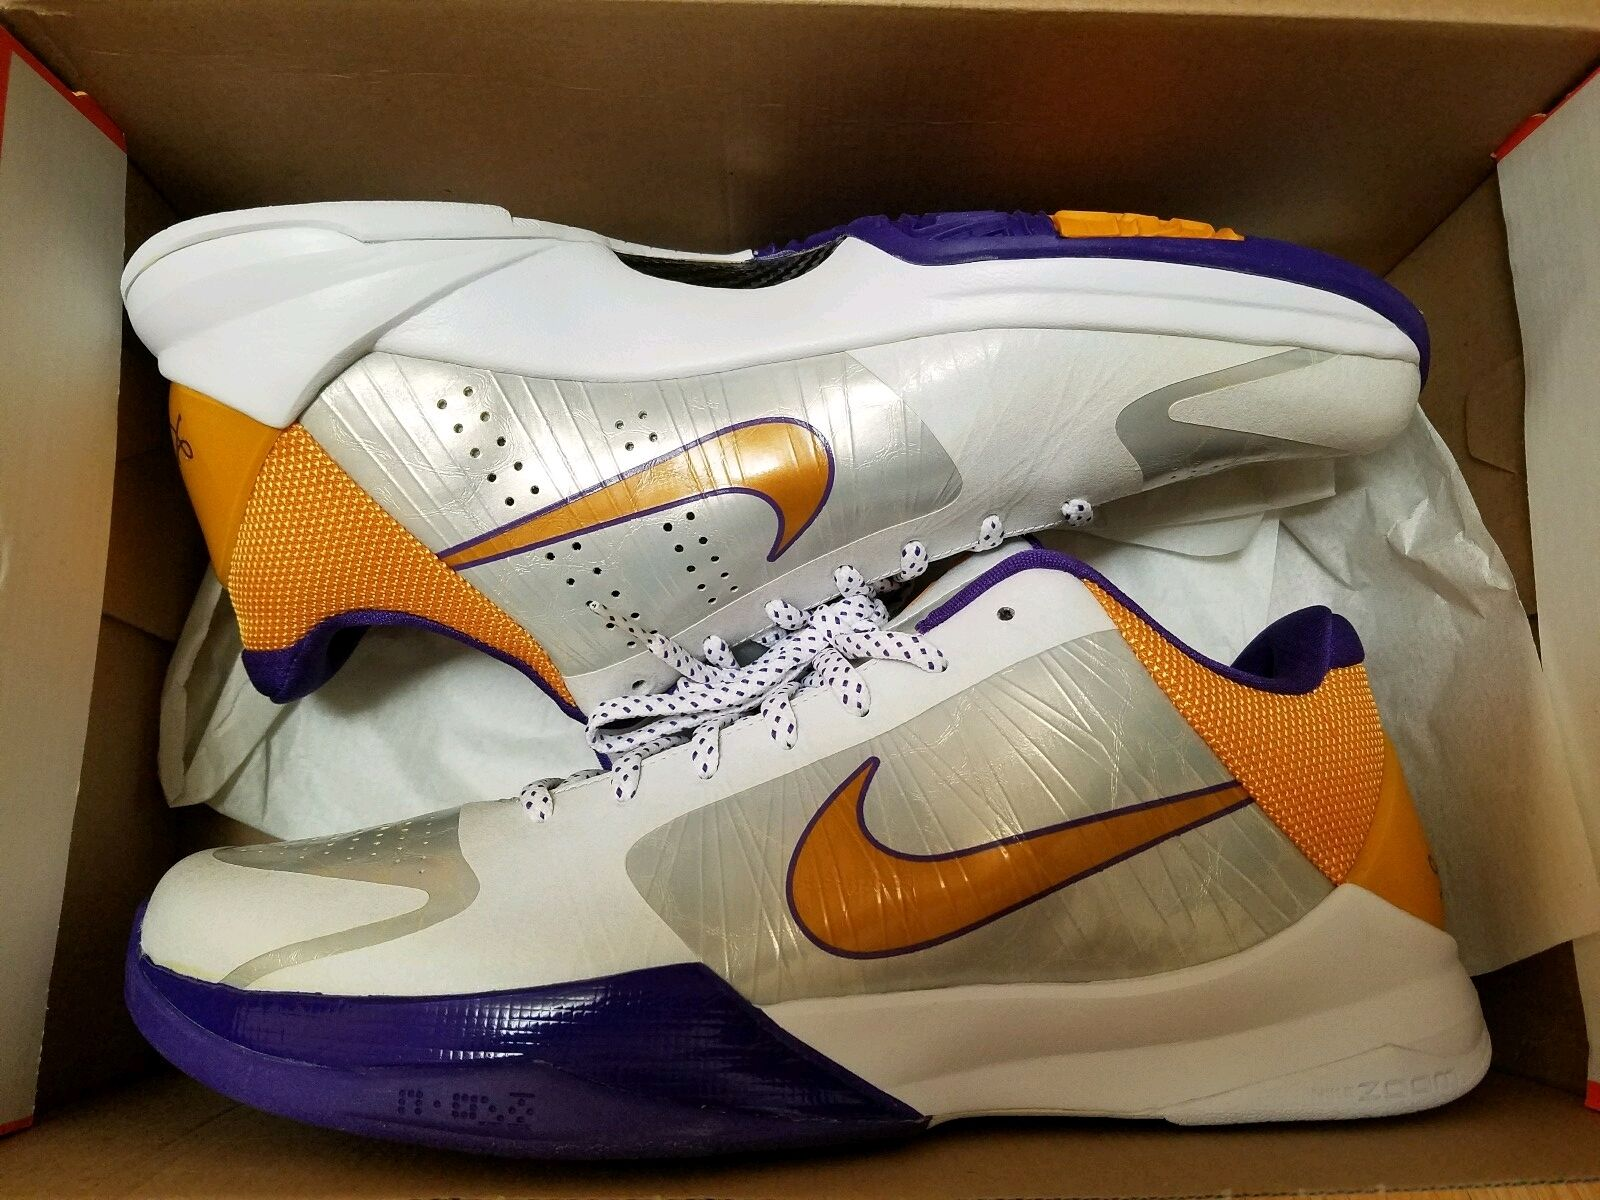 New Rare Nike Kobe Bryant V Home Men Basketball Shoes With Original Box Comfortable New shoes for men and women, limited time discount